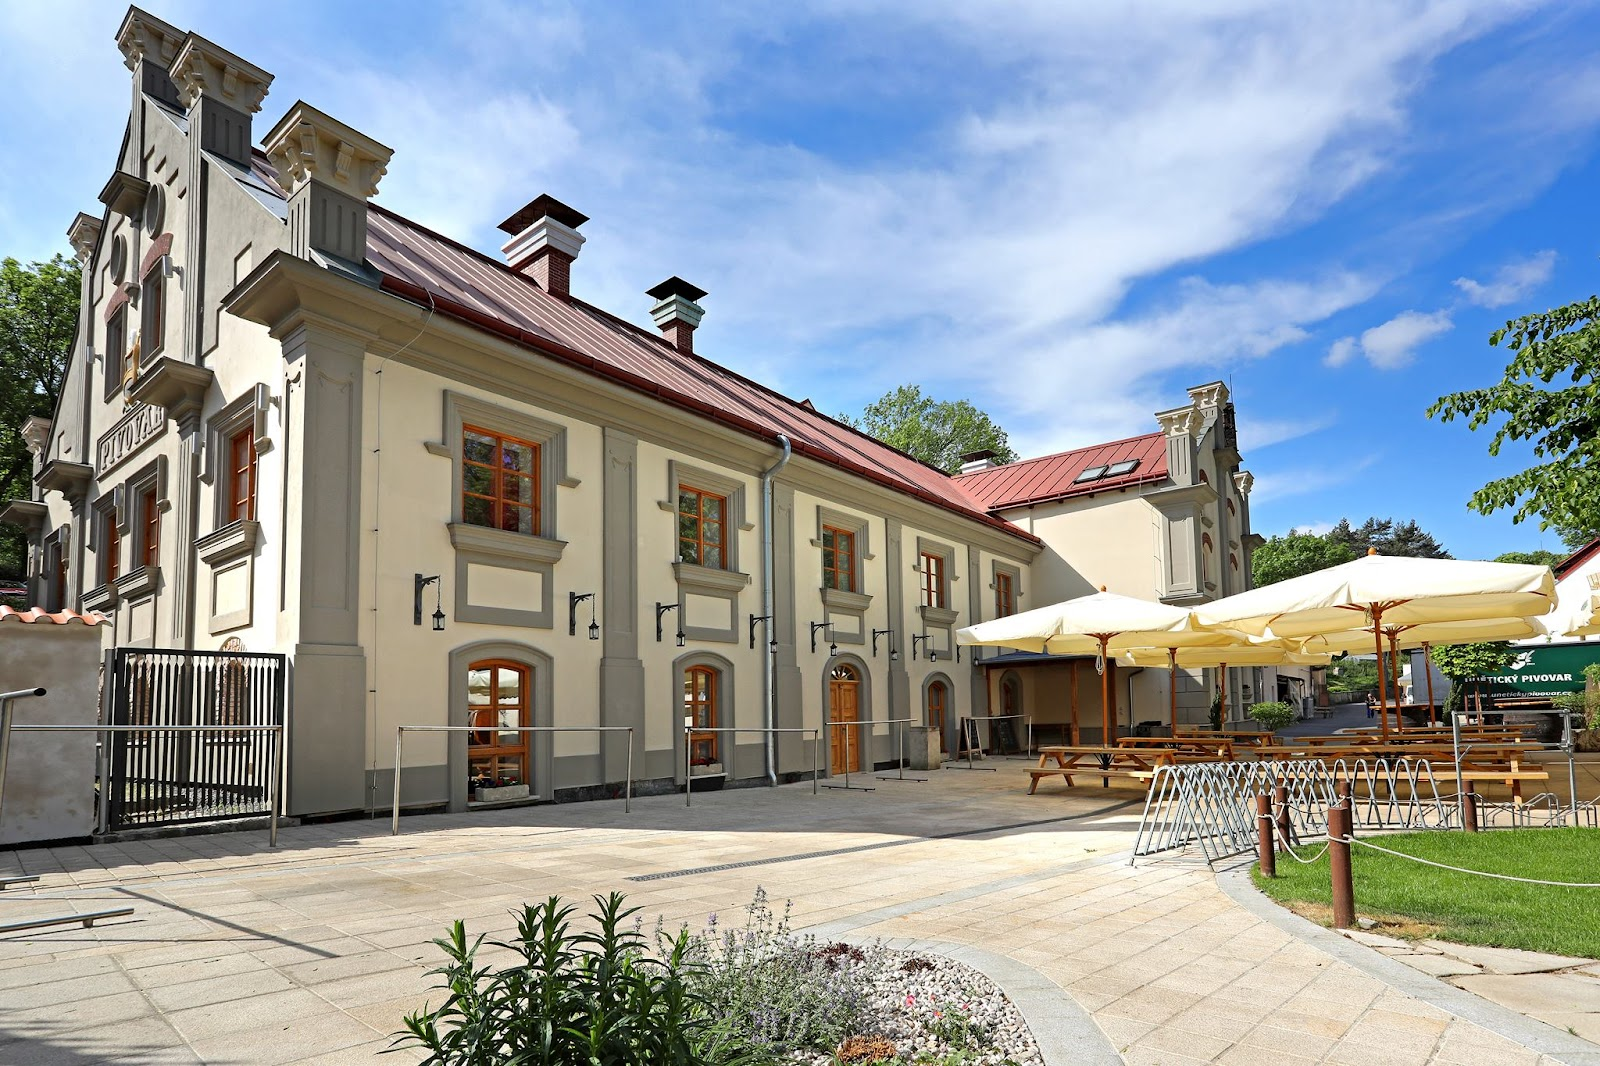 Unětice lies just beyond Suchdol and is an easy bike ride away from Prague